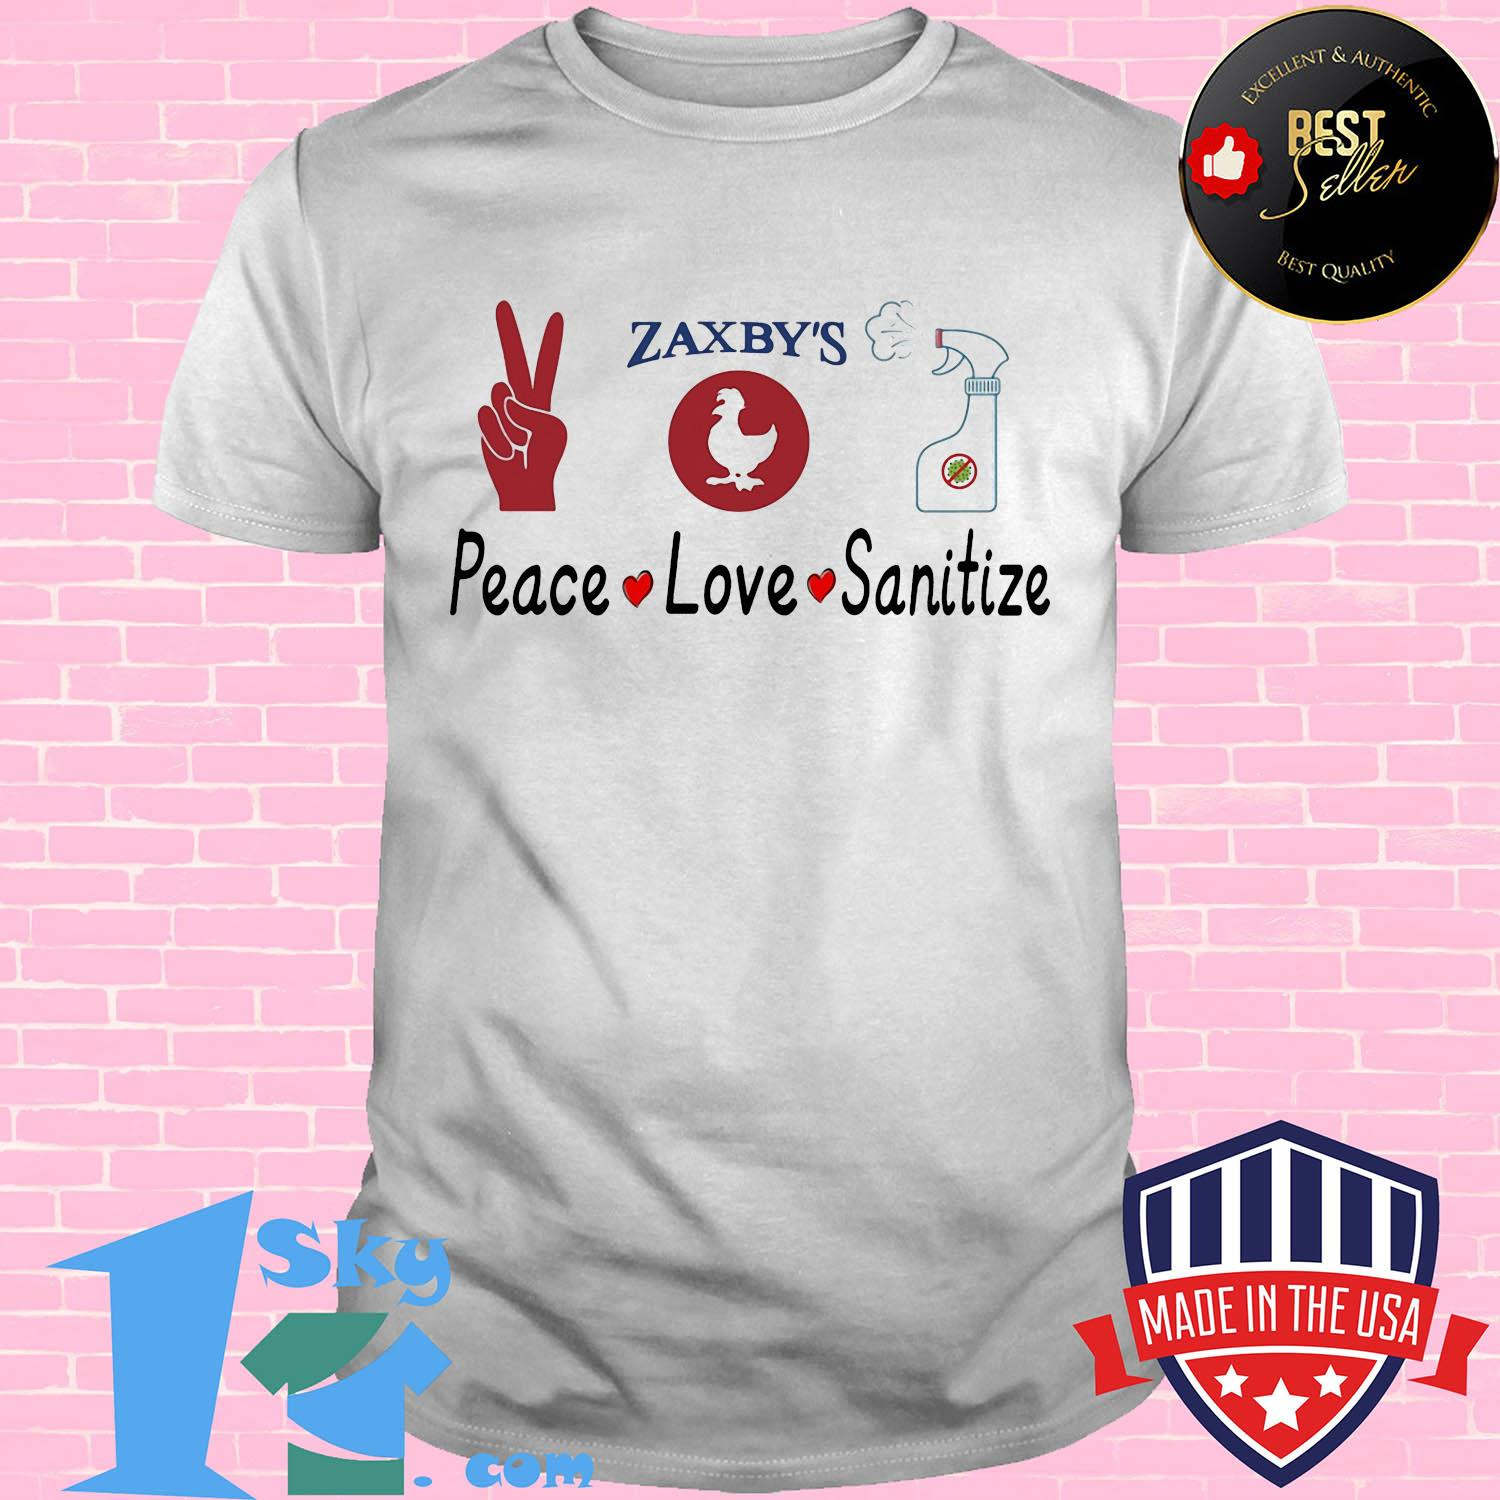 Zaxby's peace love sanitize shirt